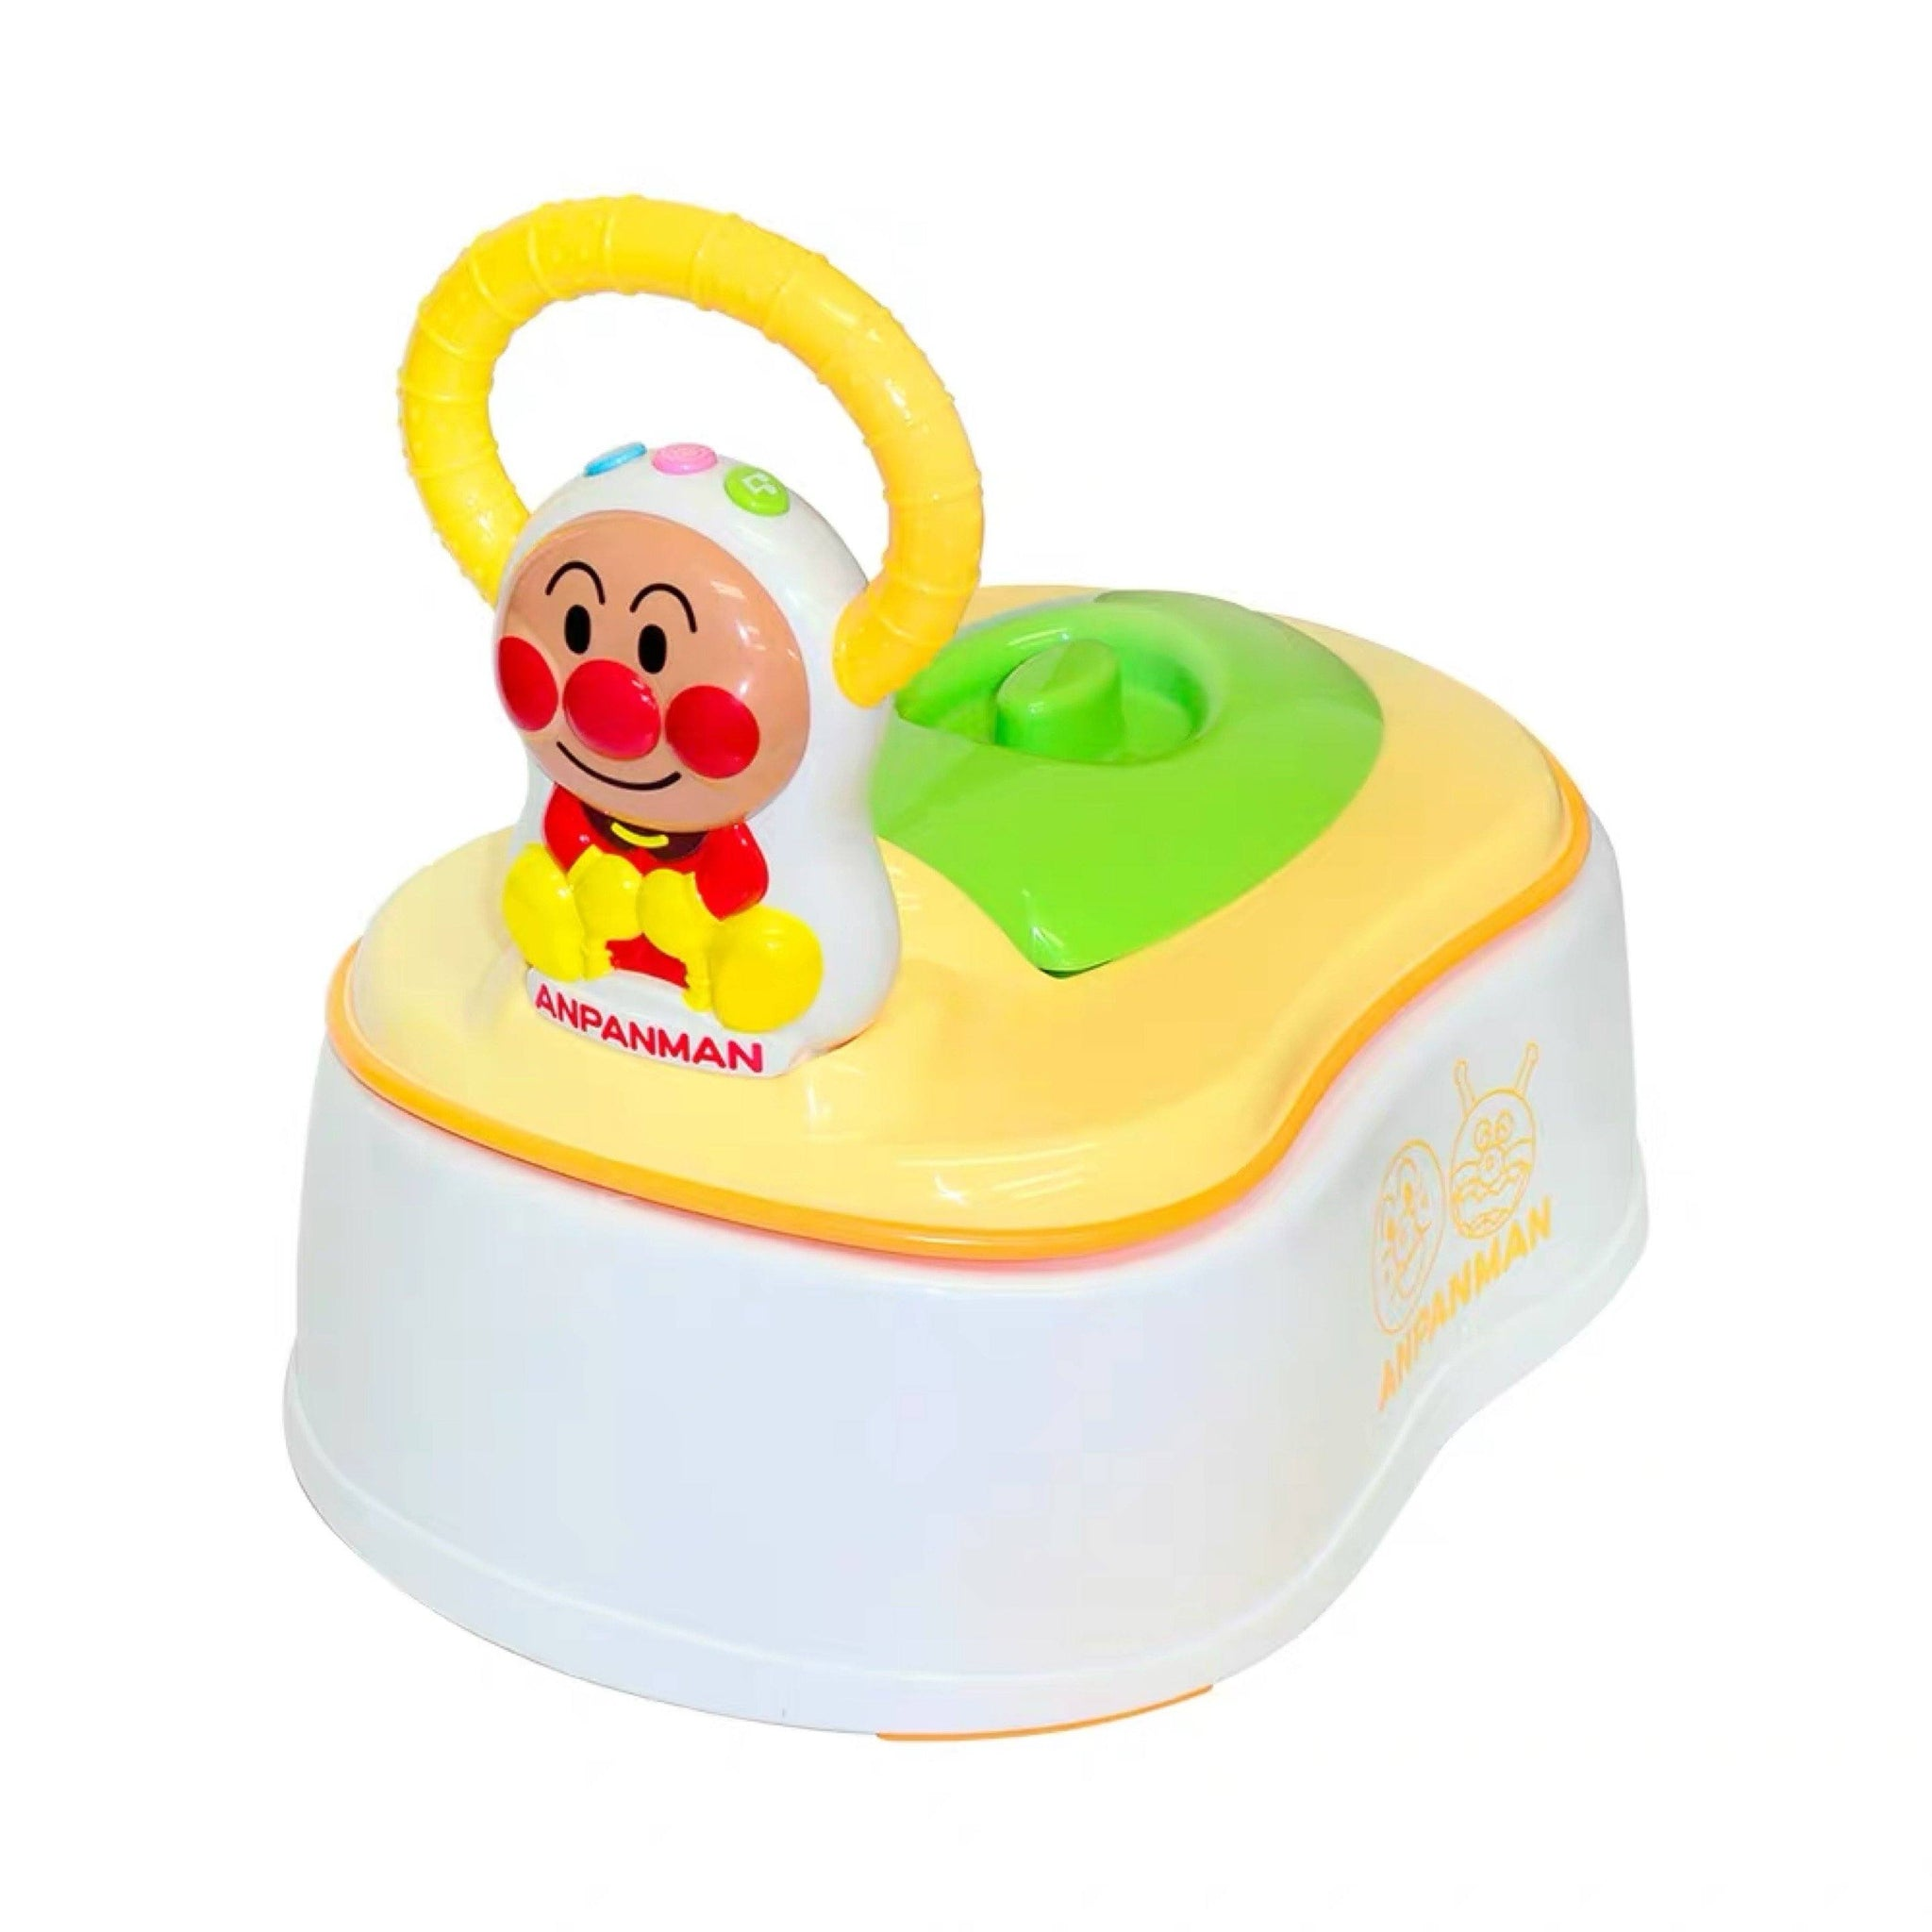 Agatsuma Anpanman 5WAY with potty chat - 面包超人